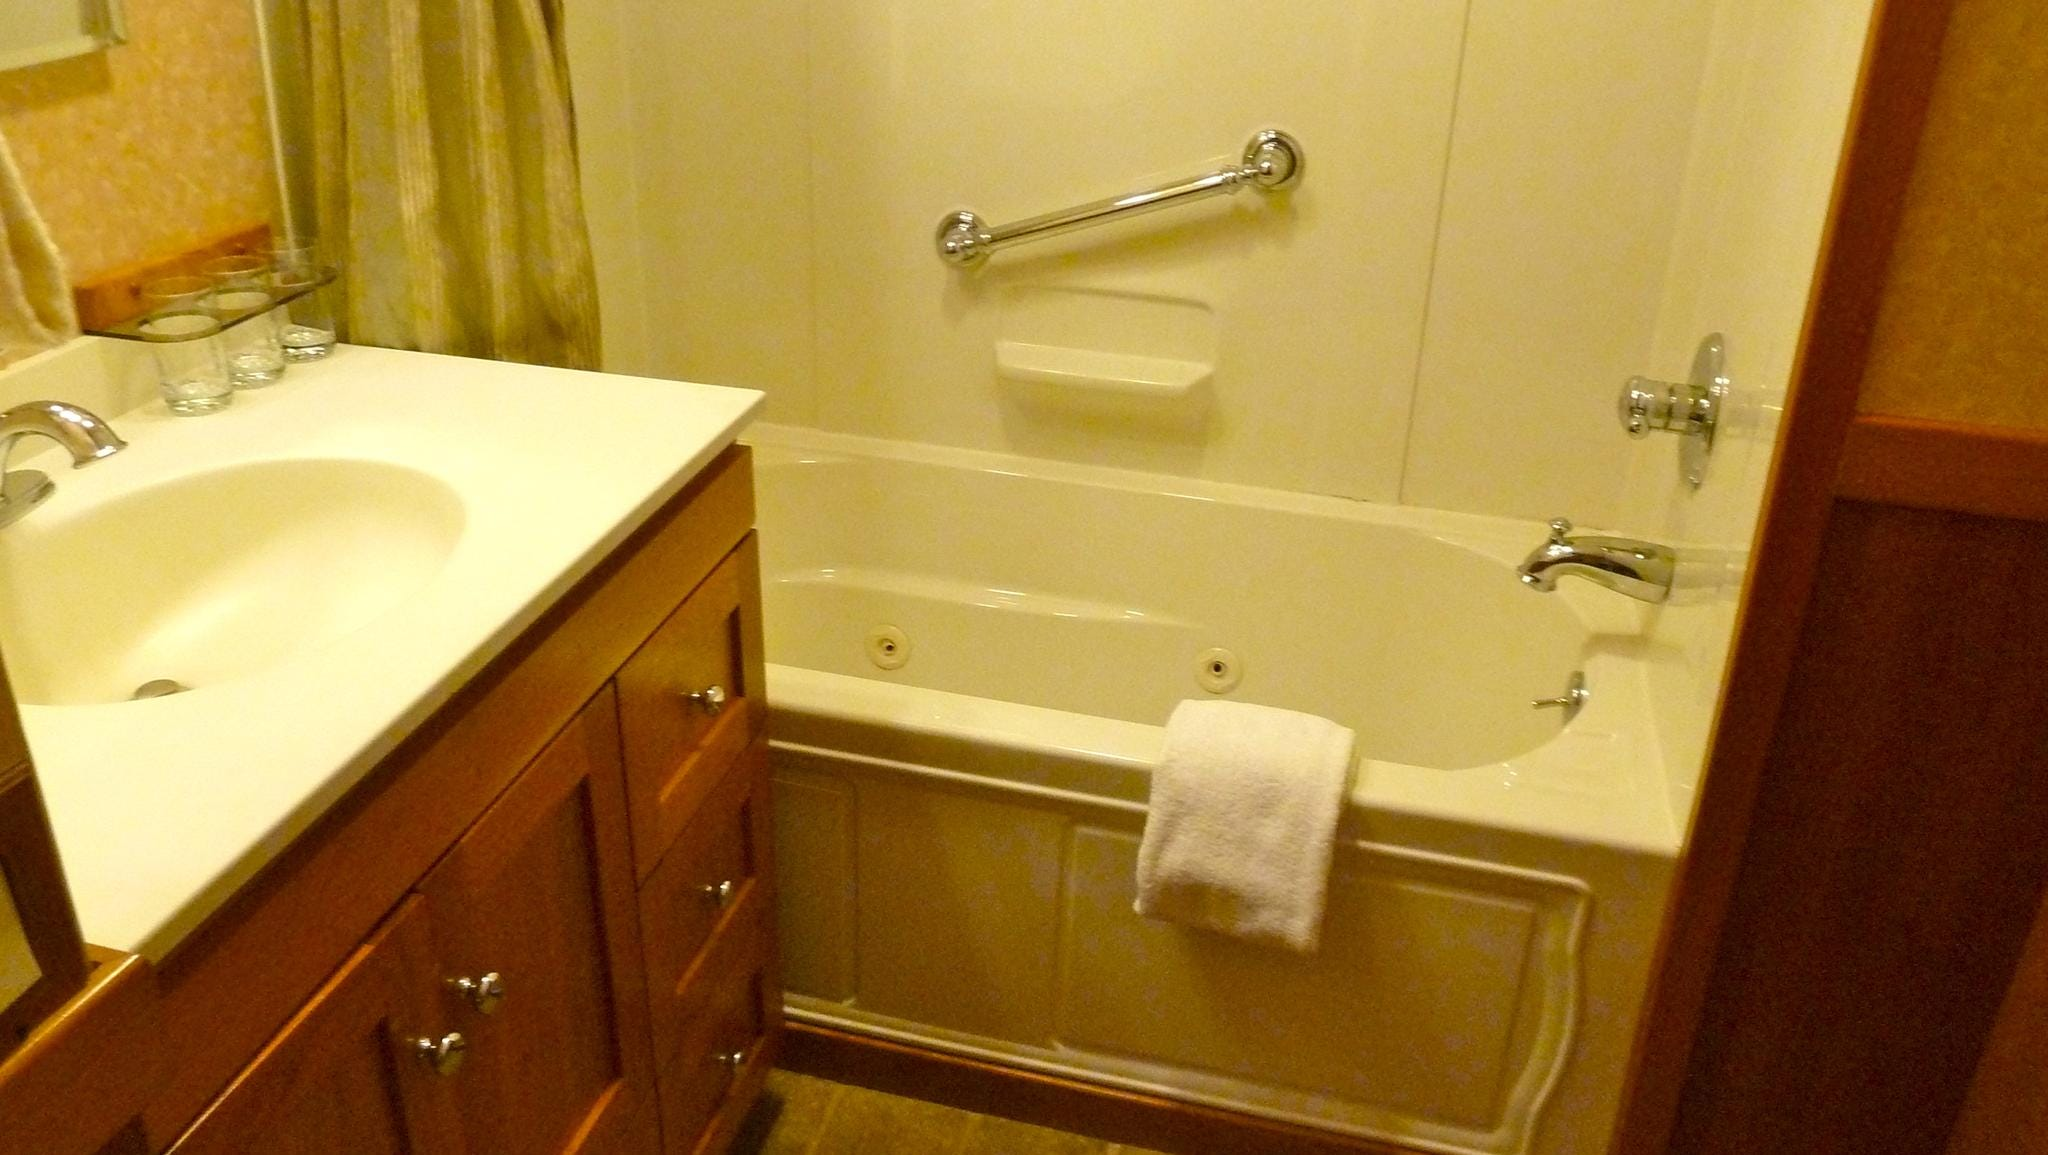 Admiral Stateroom bathrooms also have Jacuzzi tubs.